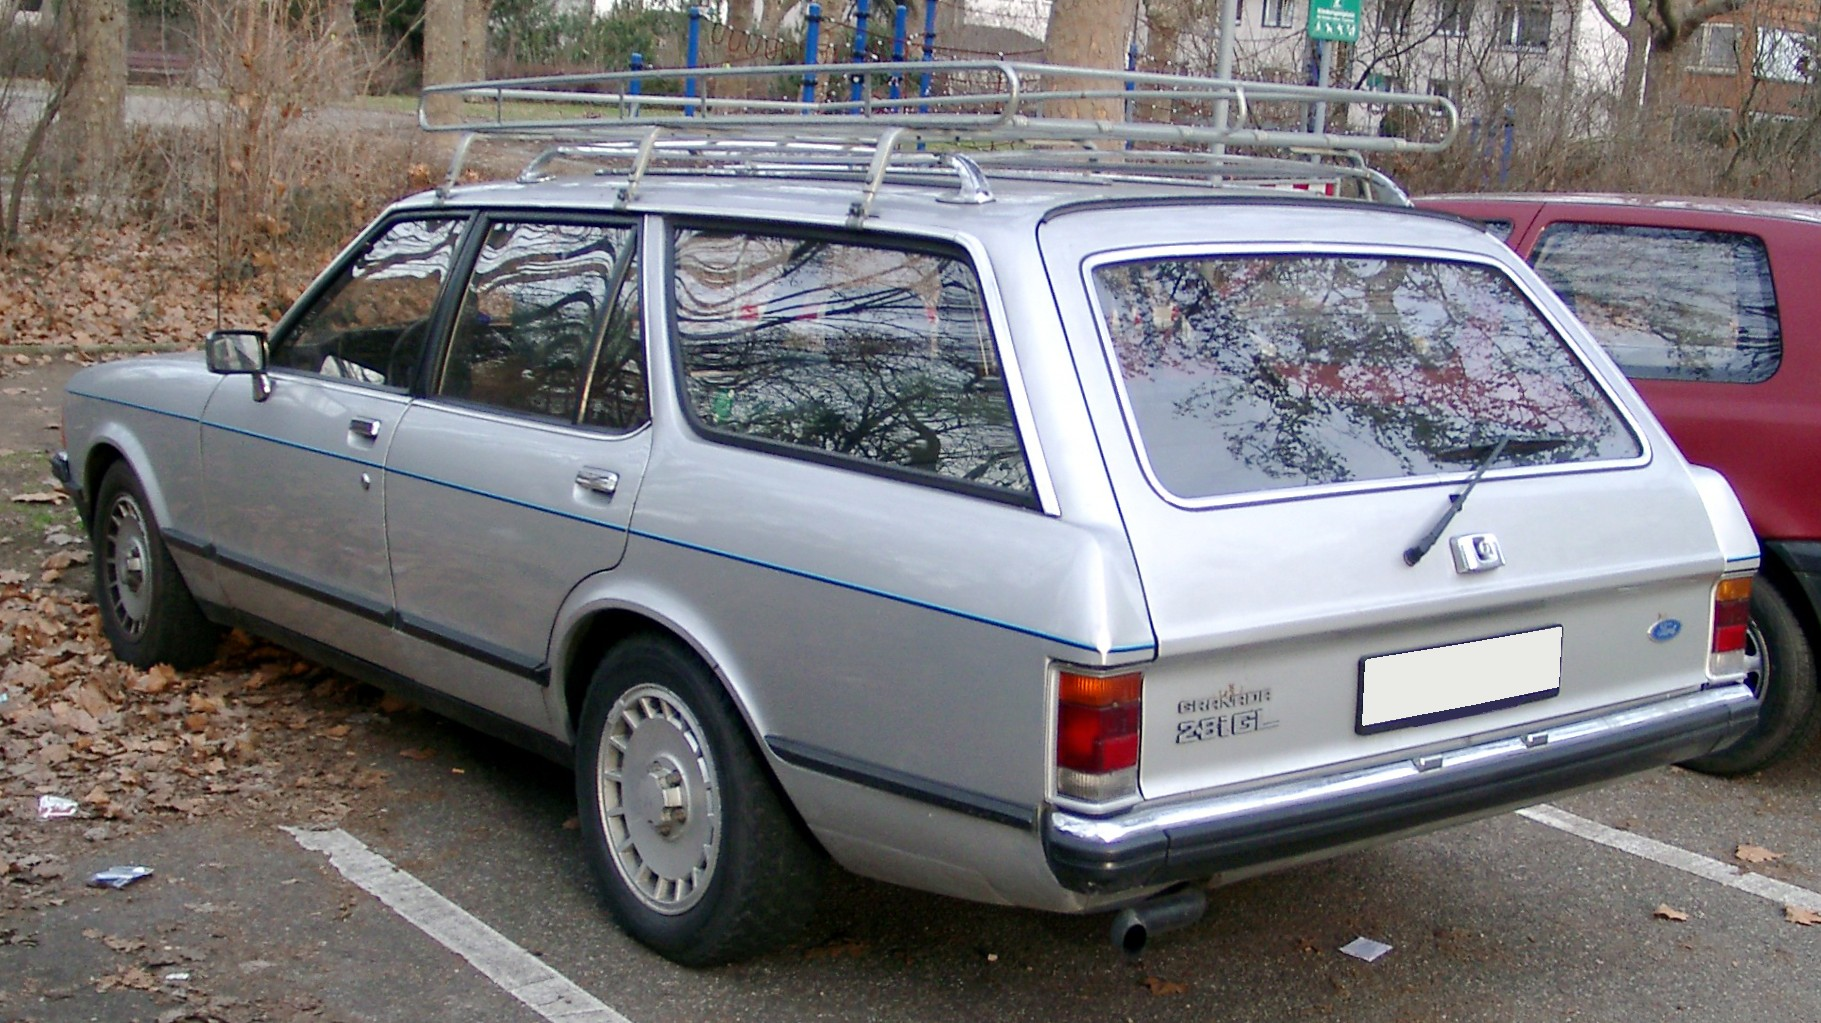 File:Ford Granada front 20080127.jpg - Wikimedia Commons